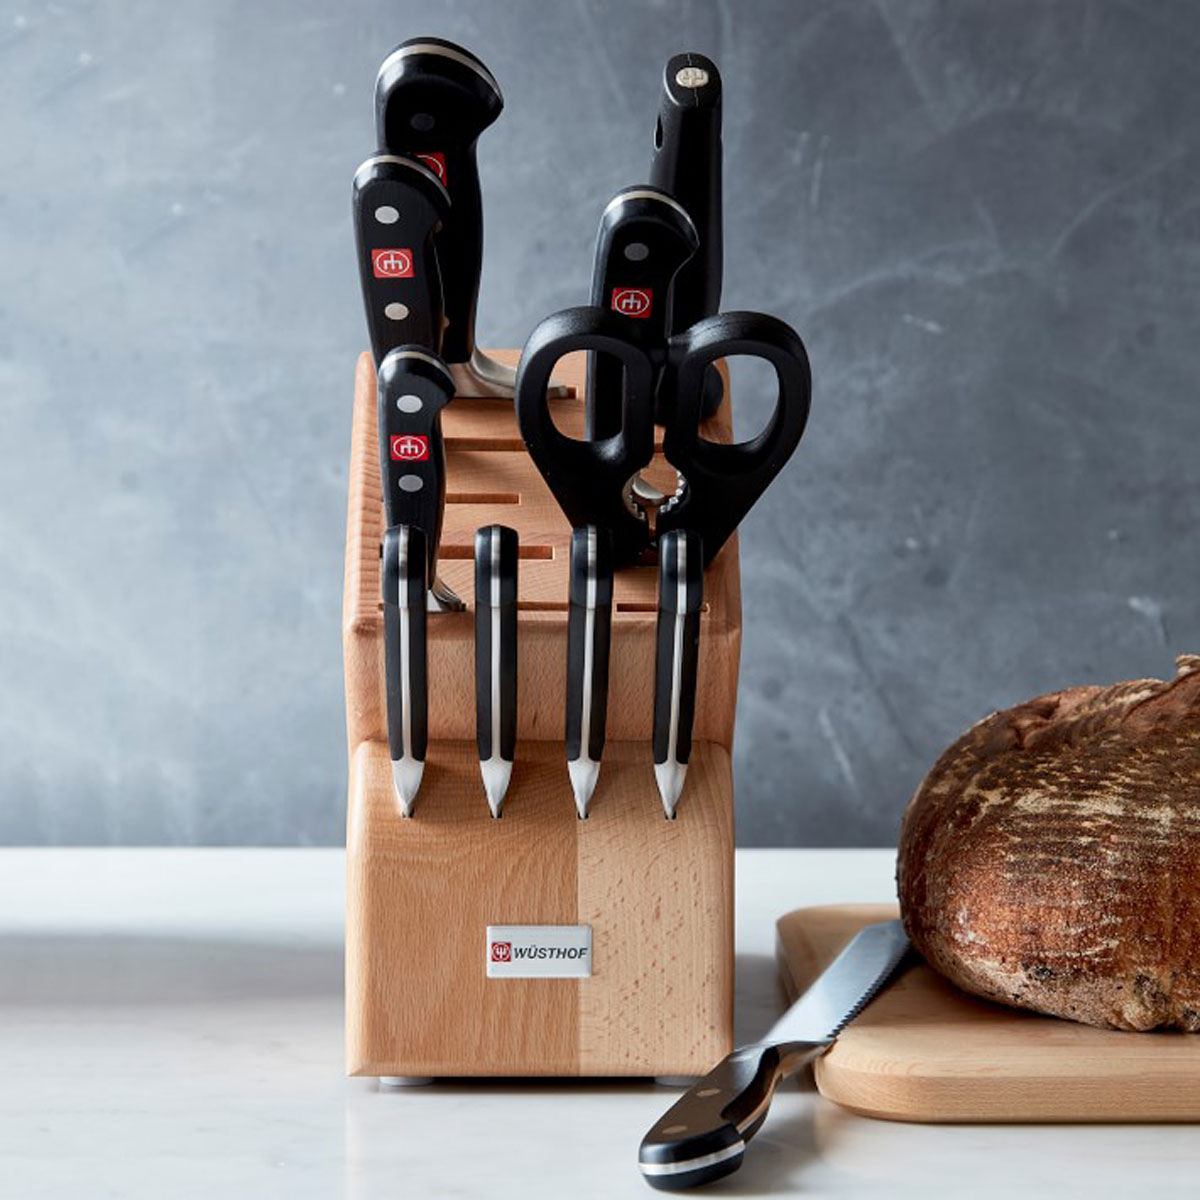 knife-sets-gifts-wusthof-classic-12-piece-knife-block-set-FT-BLOG1219.jpg